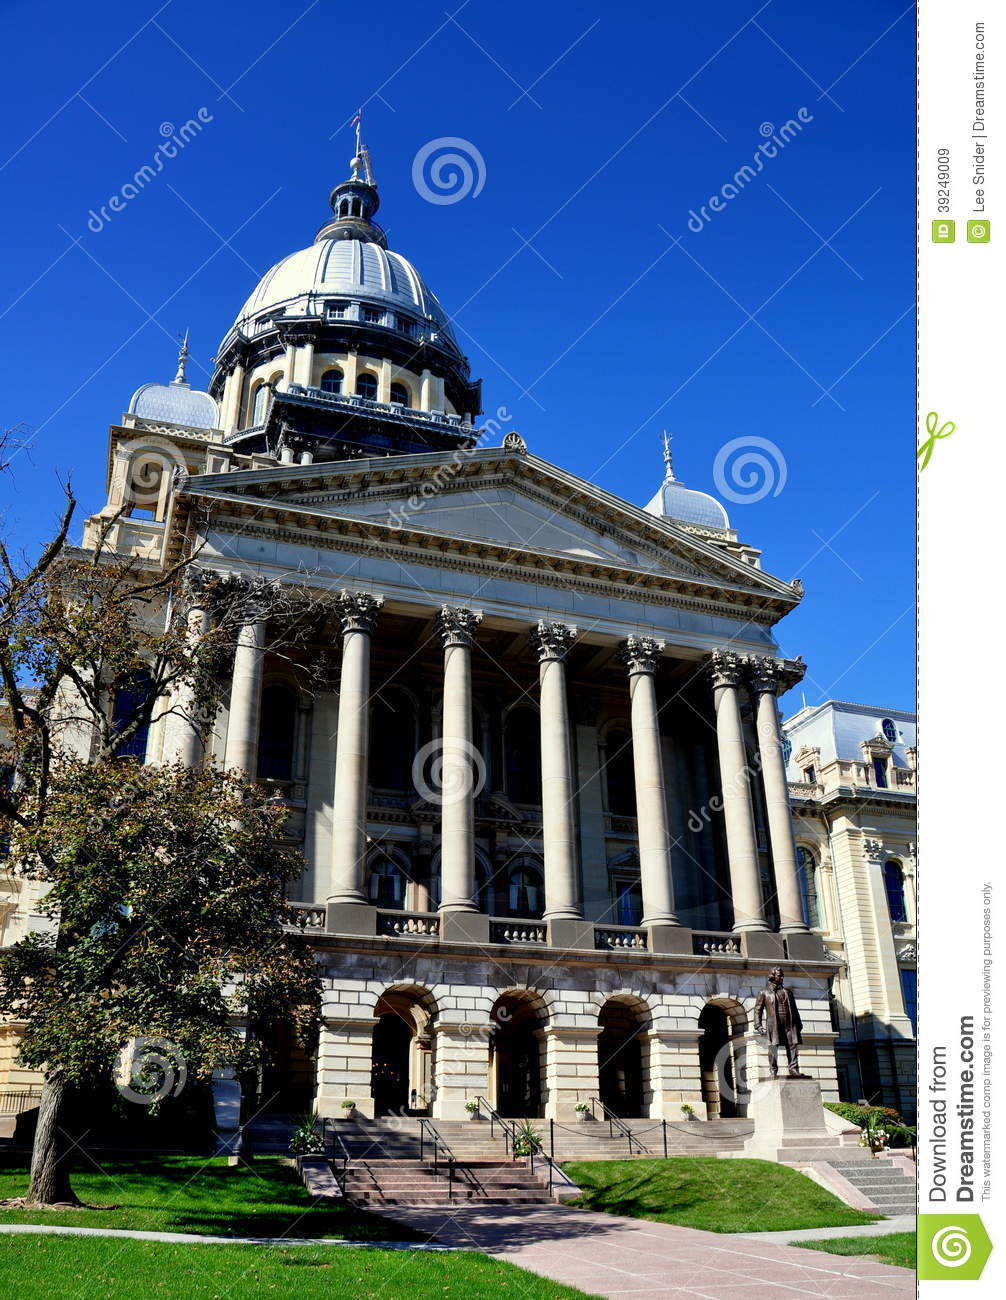 Car Dealerships Springfield Il >> Springfield, Illinois: State Capitol Building Stock Photo - Image: 39249009